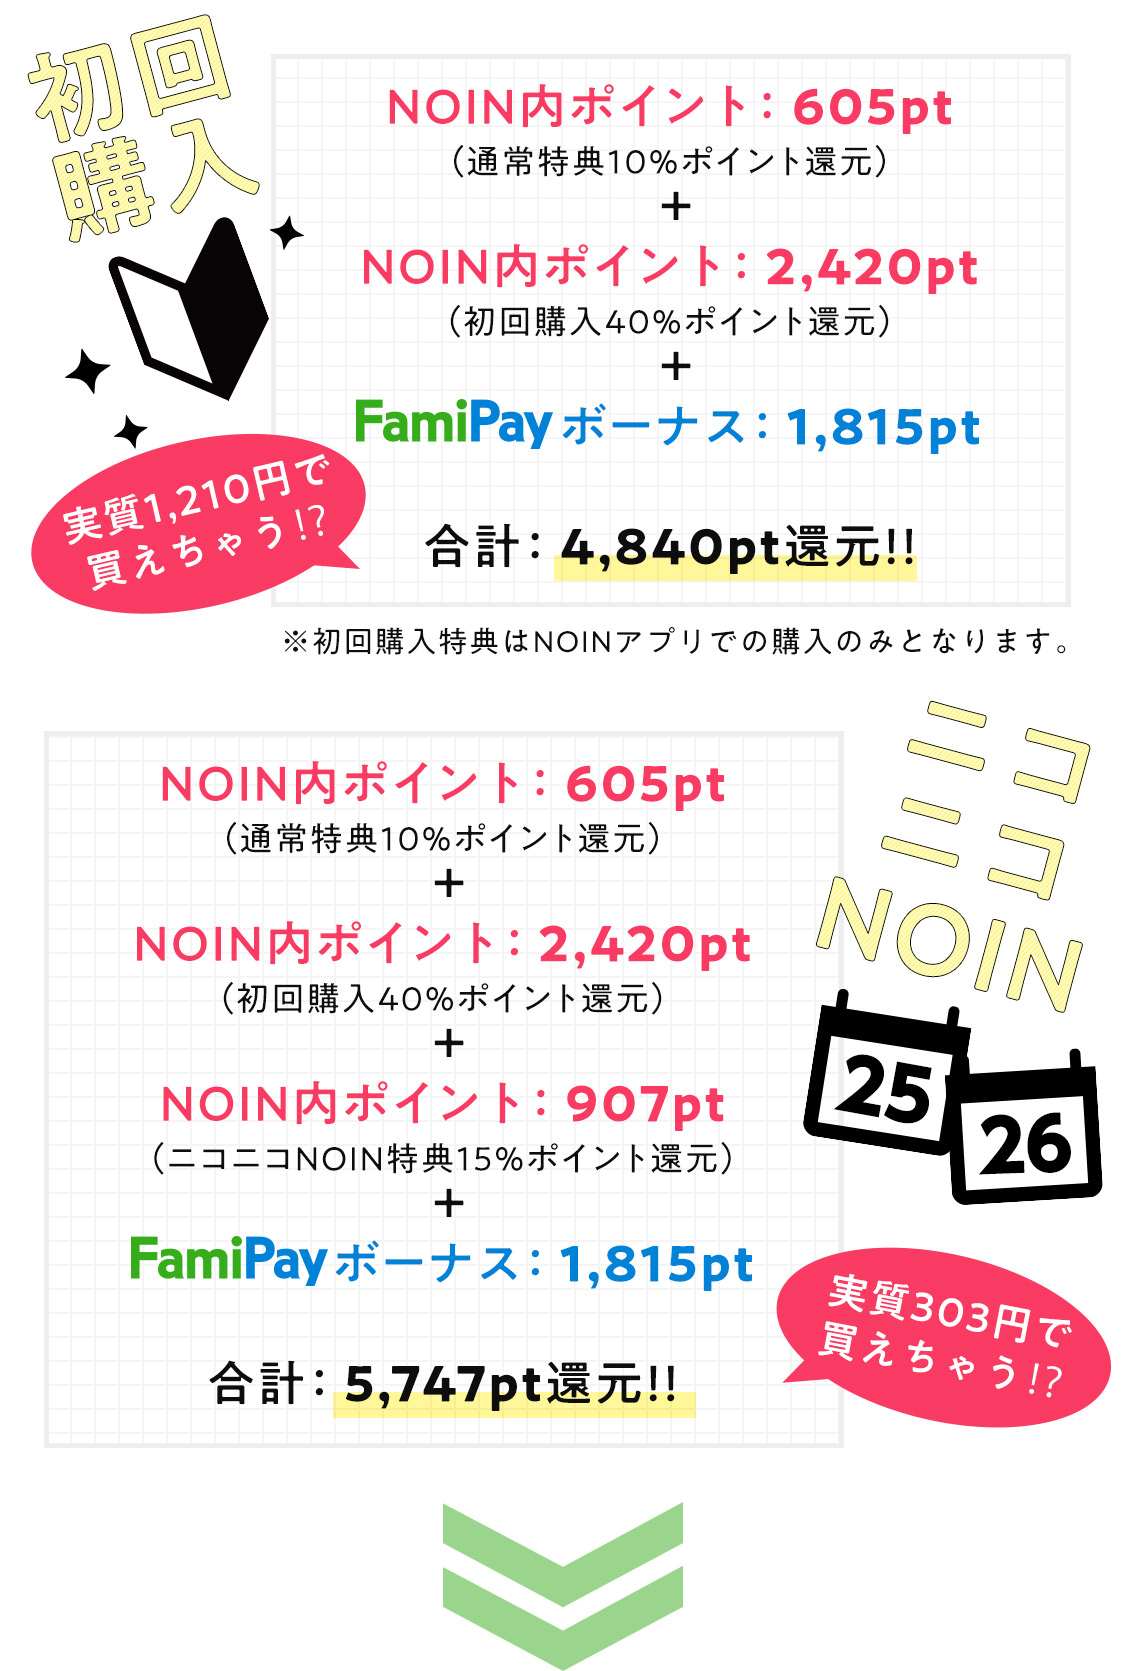 NOINでFamiPay決済するとFamiPayボーナス30%還元!の画像